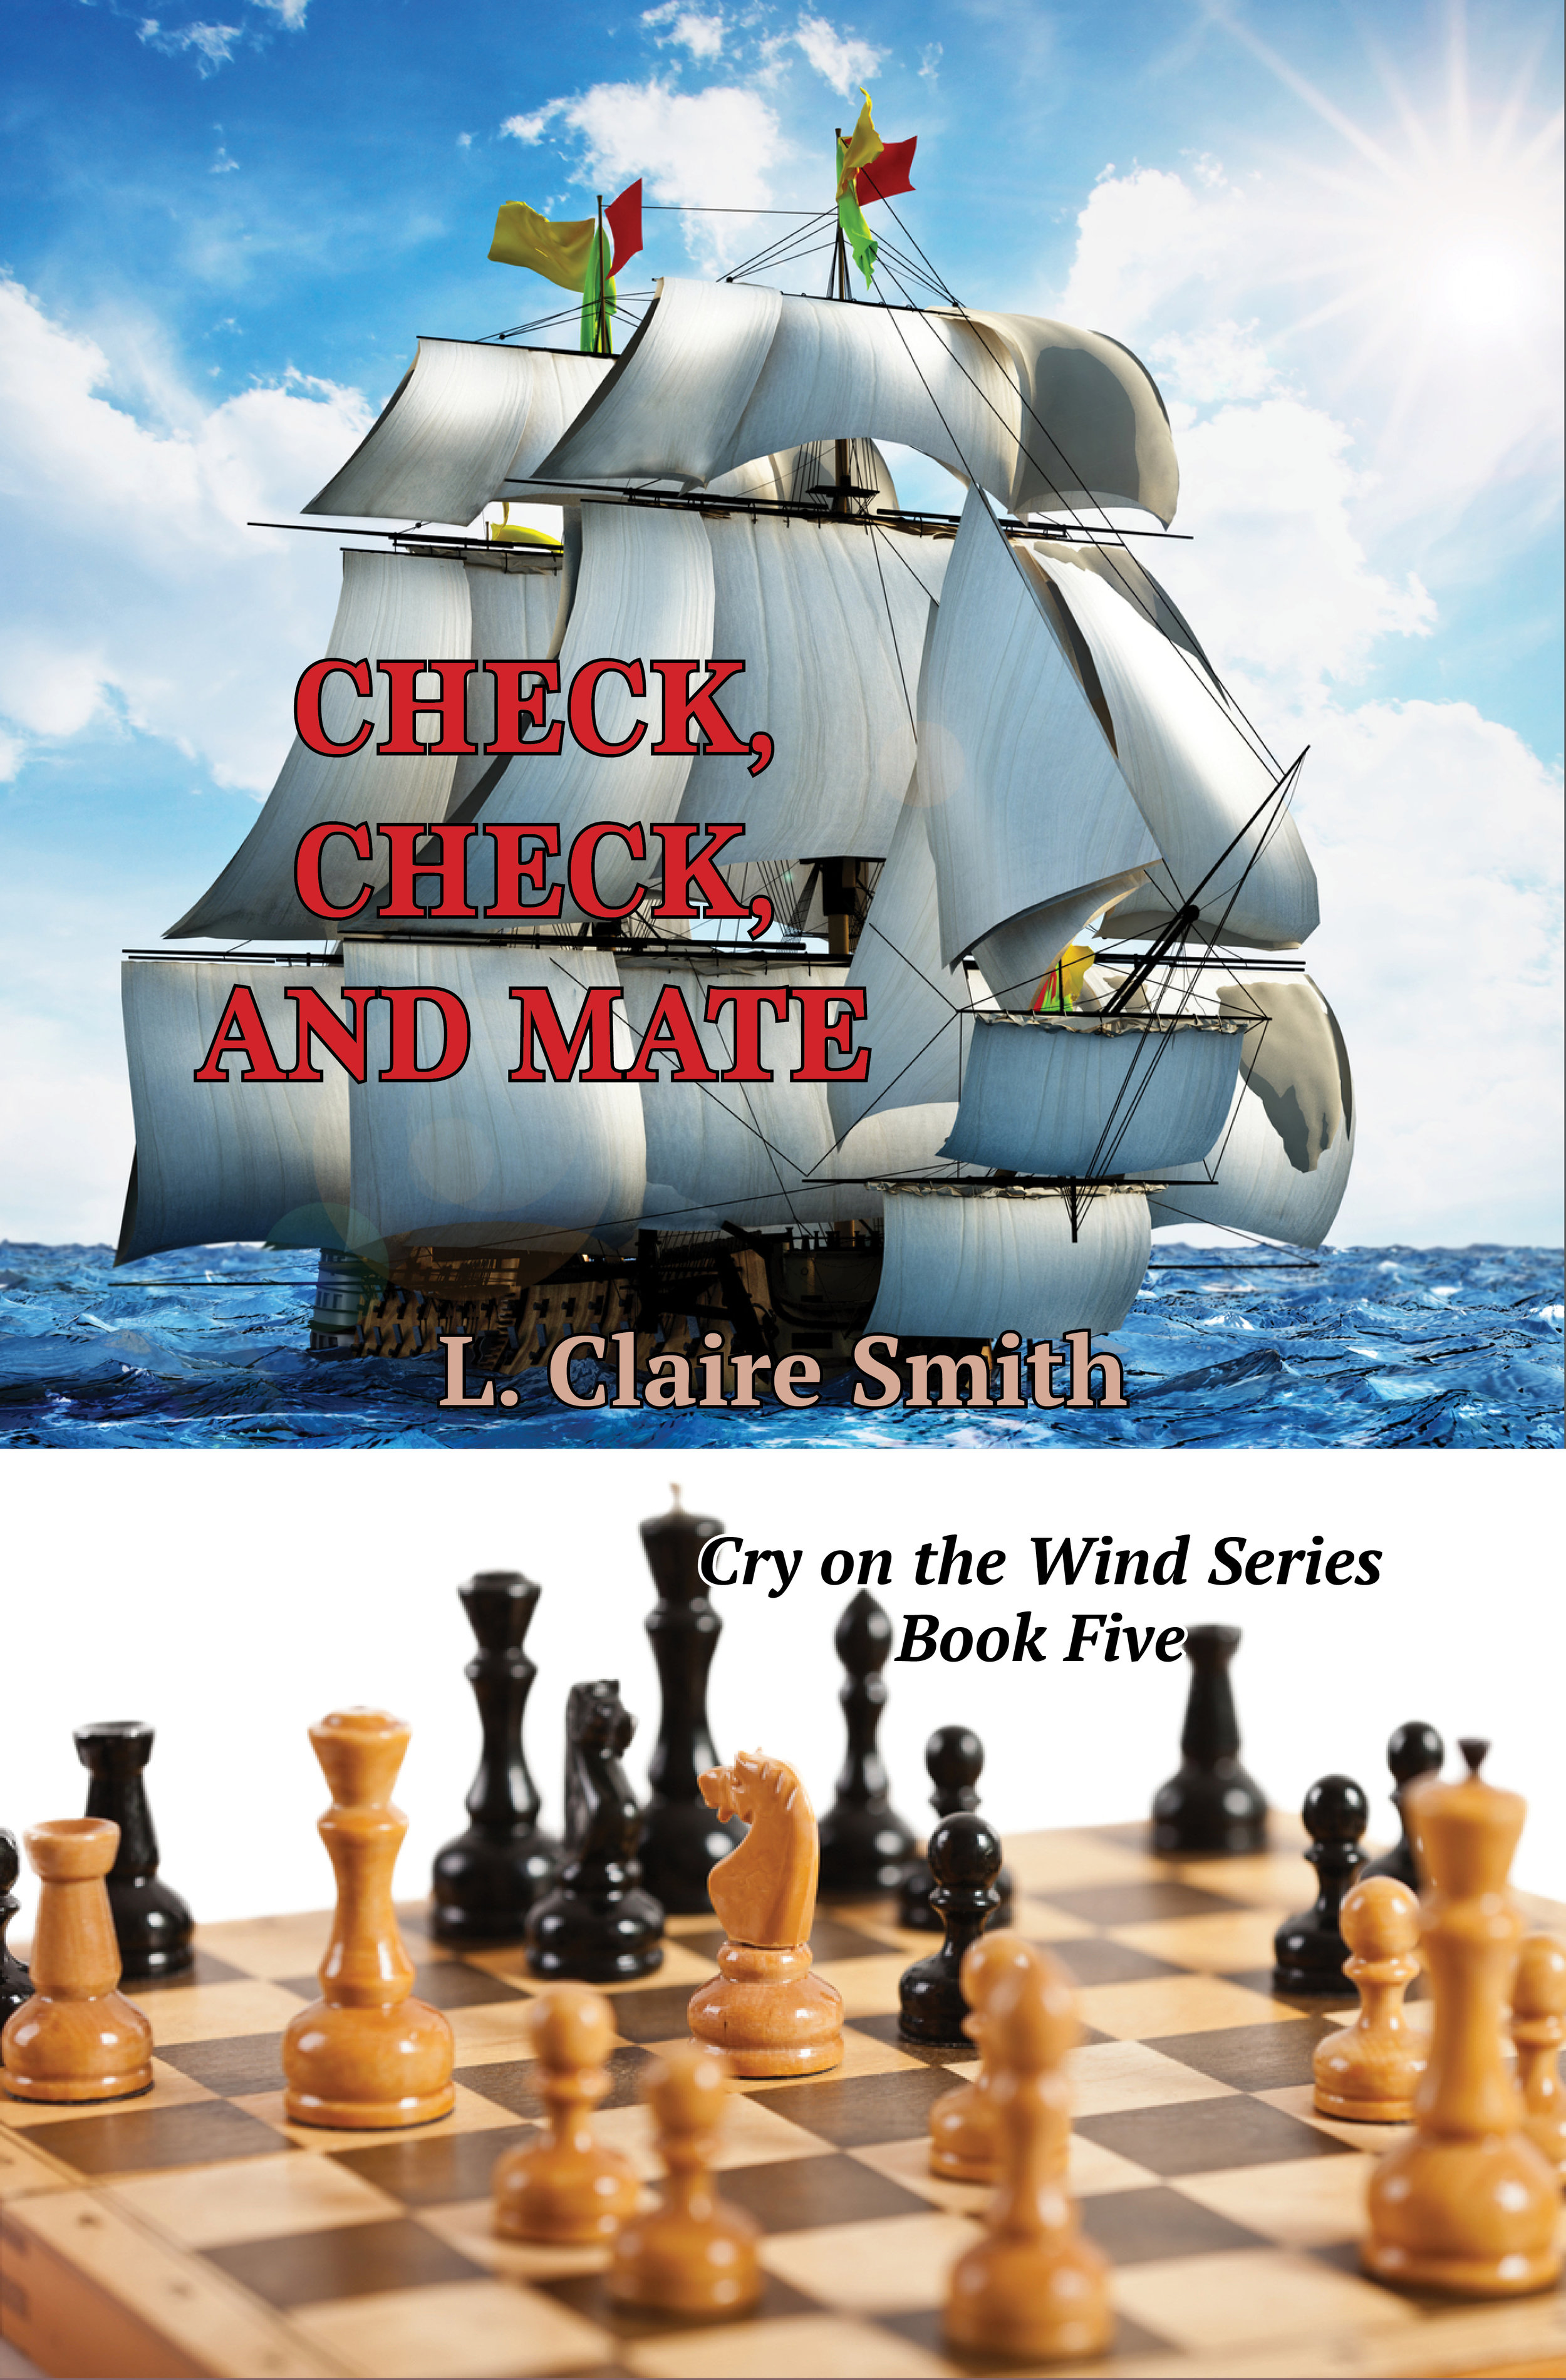 Check, Check, and Mate Front Cover 4_9_18_1.jpg